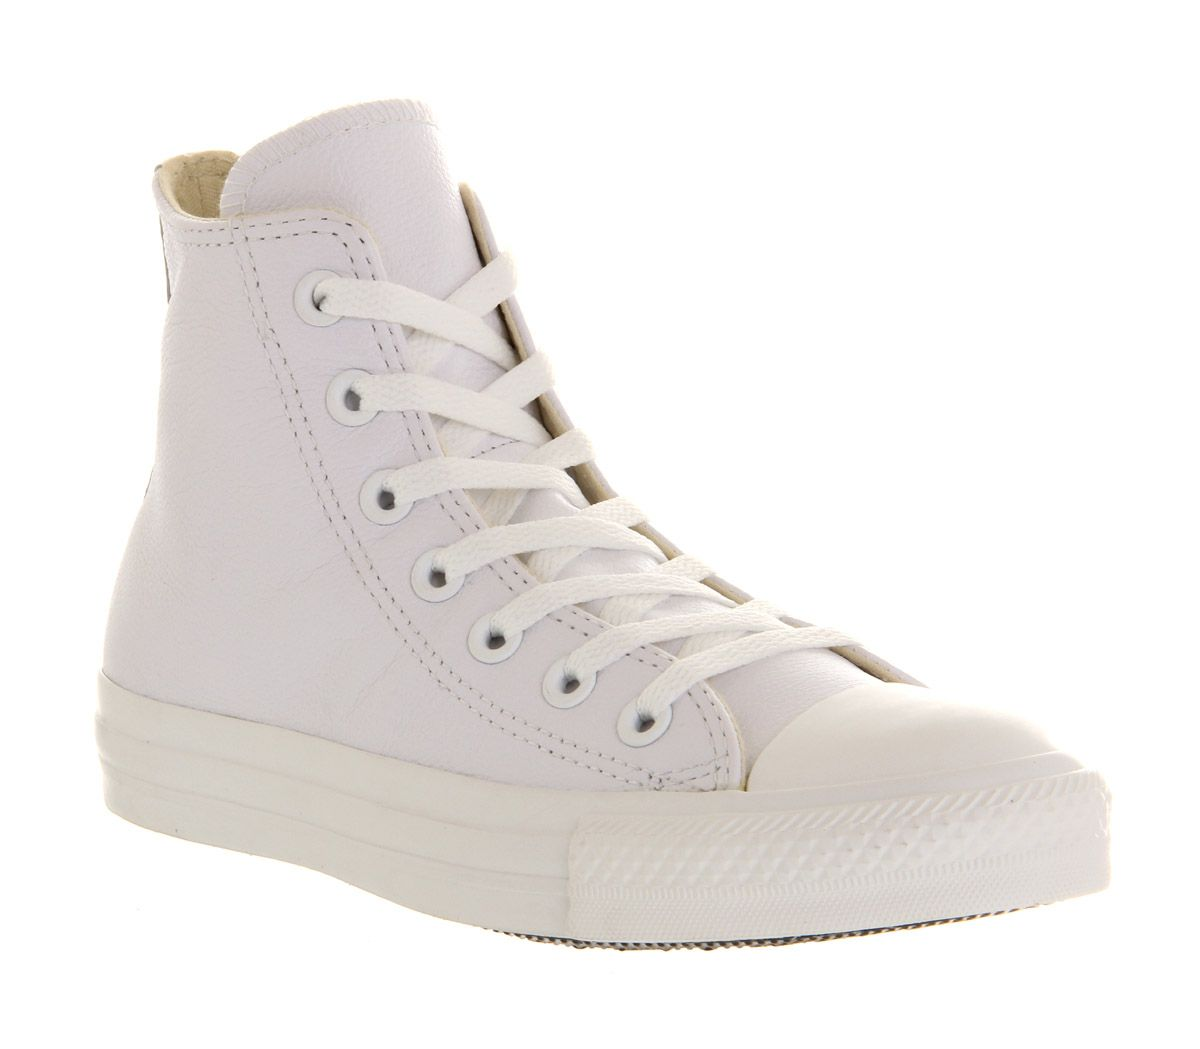 Converse Converse all star hi leather trainers White